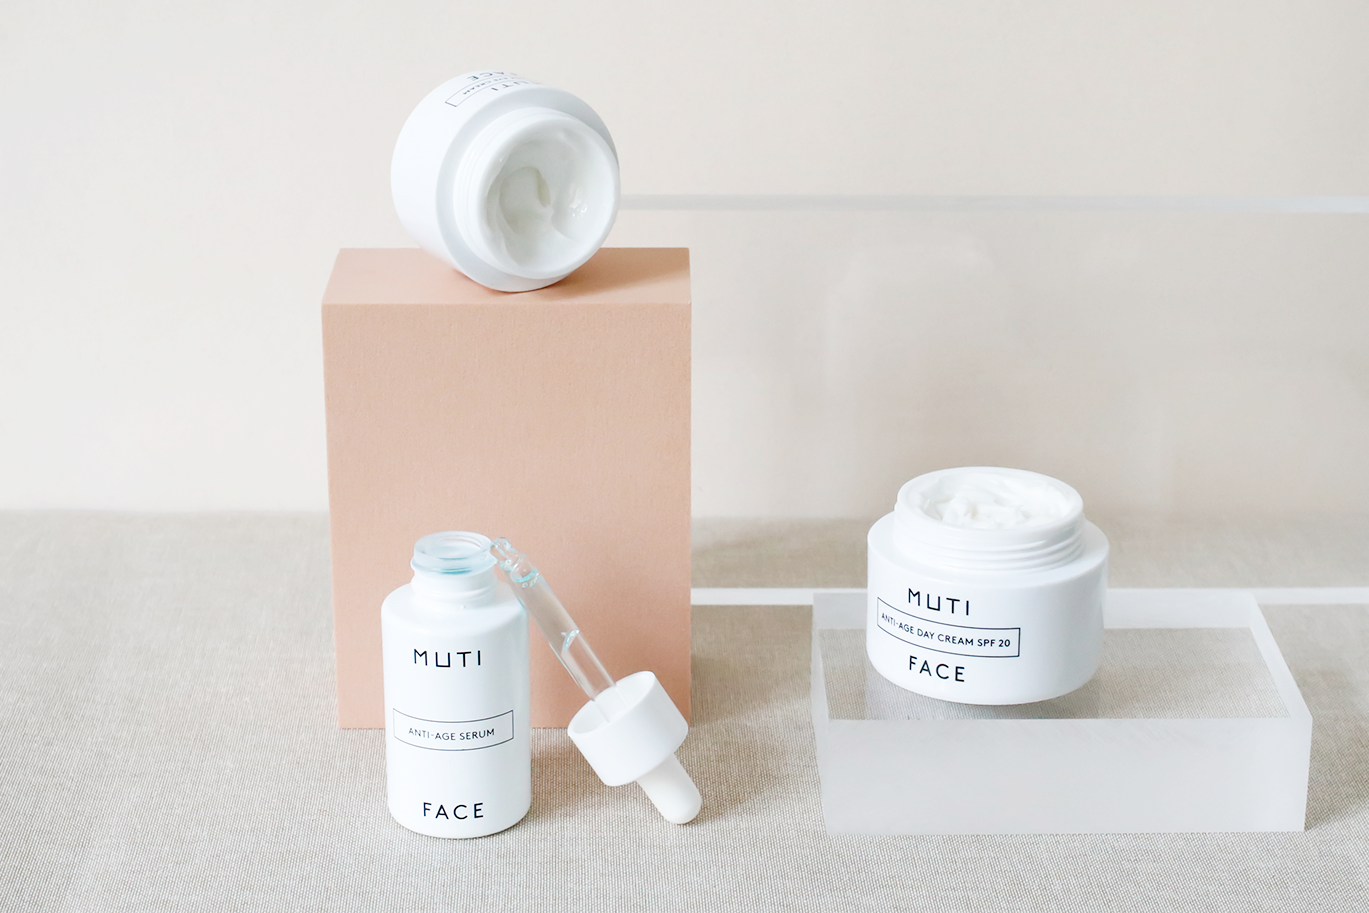 - MUTICreative Direction. Art Direction. Photography.MUTI offers a reduced and clear product range of high-quality and very gentle unisex skincare essentials for the daily care routine. Their philosophy is the beauty of simplicity — concentrating on highly effective ingredients, smart product lines & clean design.